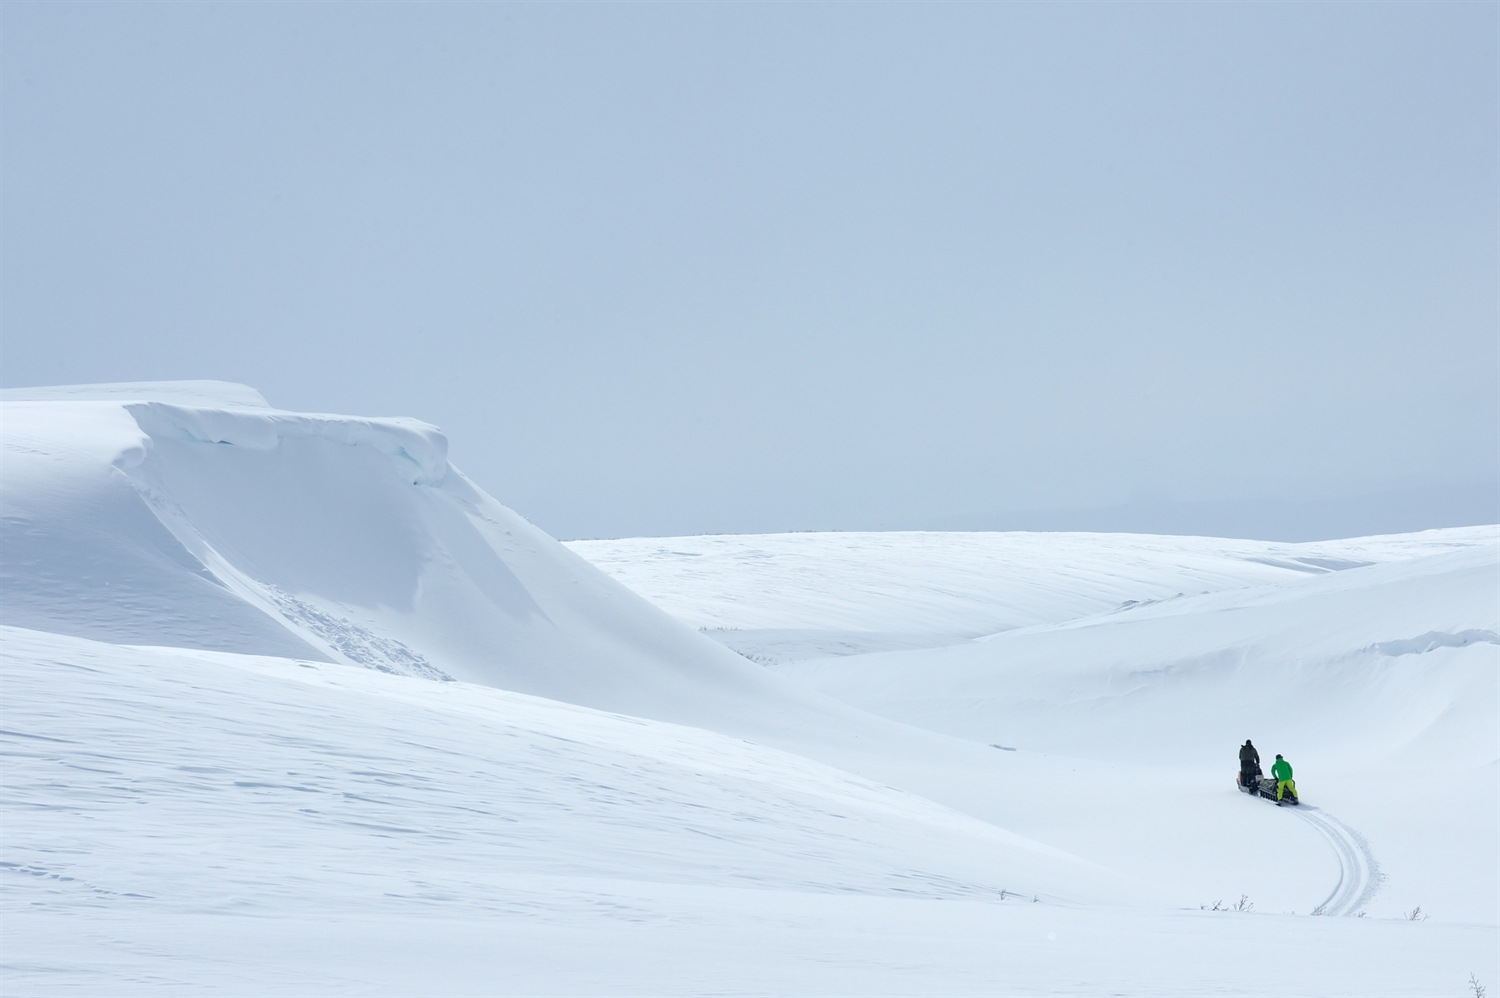 A beautiful day for a snowmobile ride. Photo courtesy of Martin Hartley